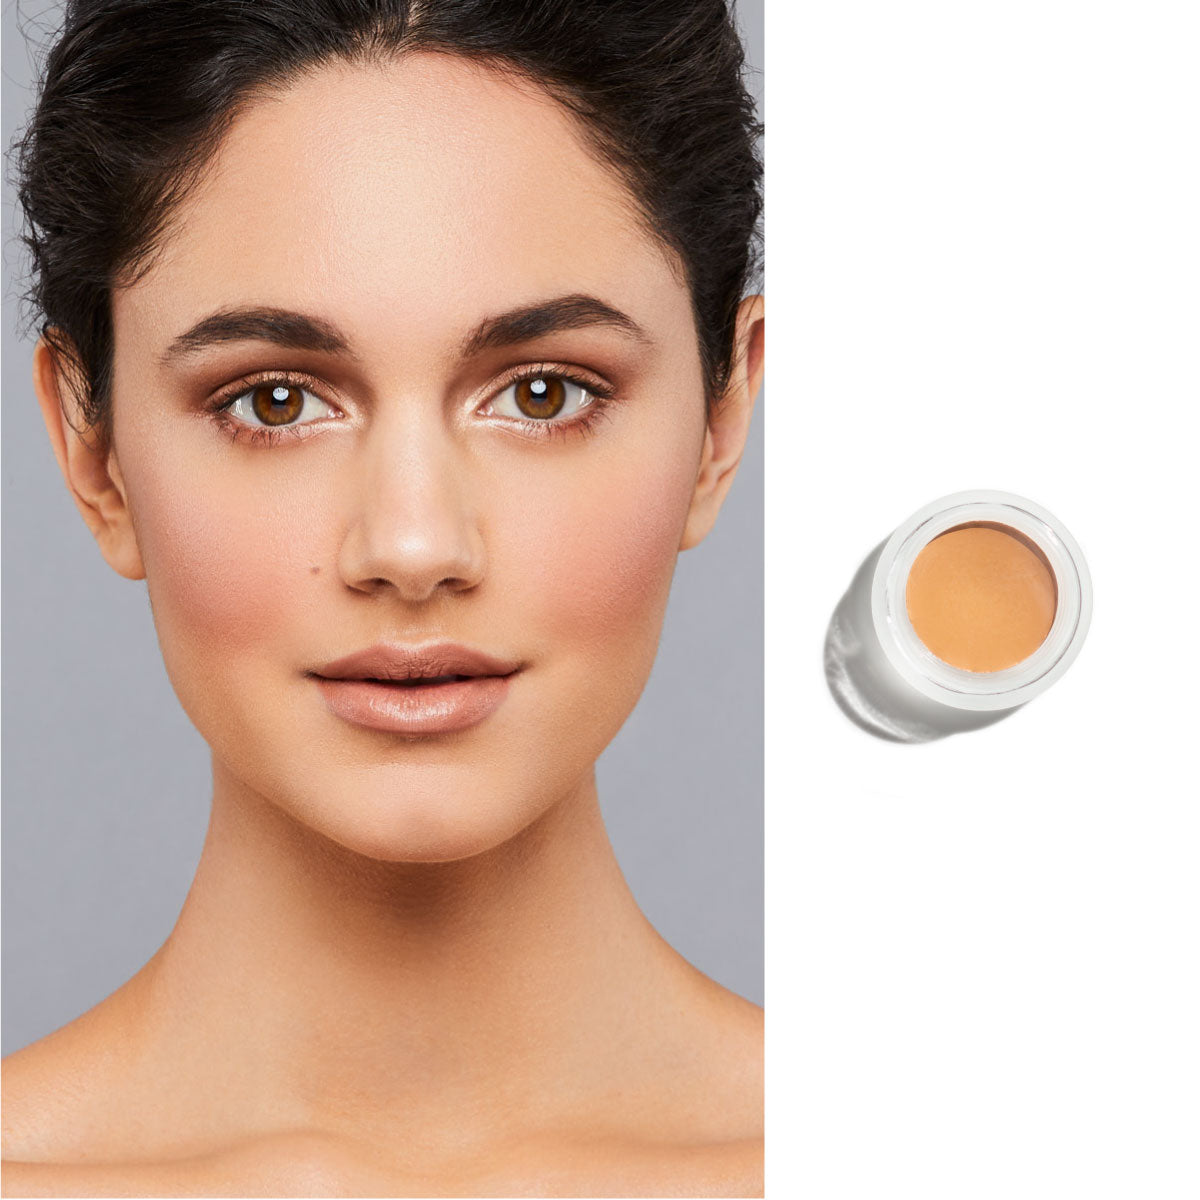 Concealer/Foundation 3.0